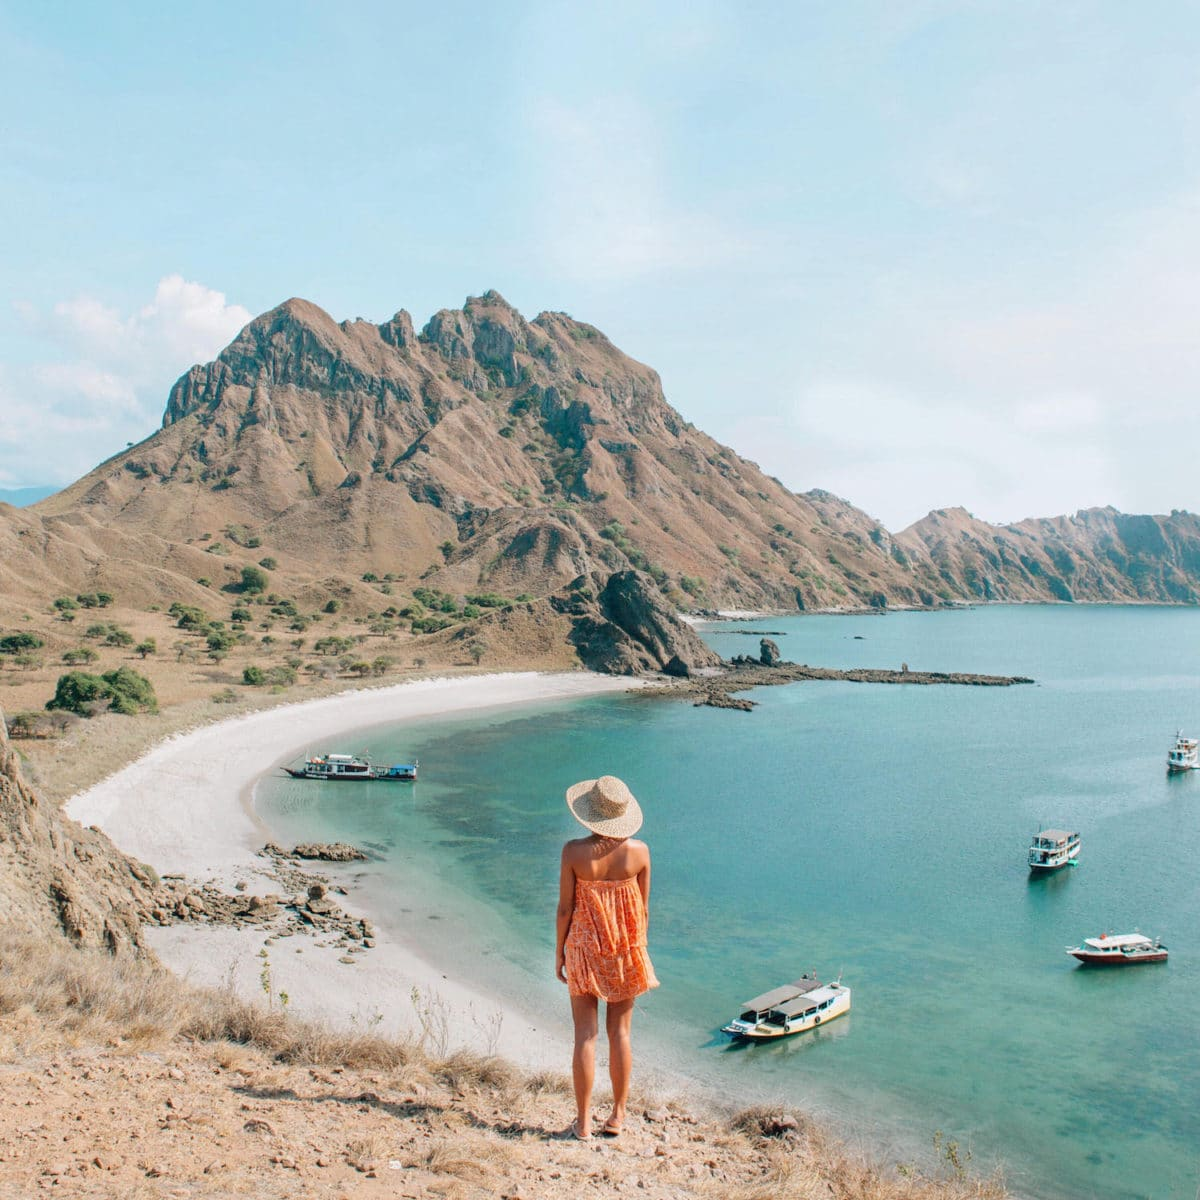 Kimi Juan @KimiJuan at Padar island, Indonesia